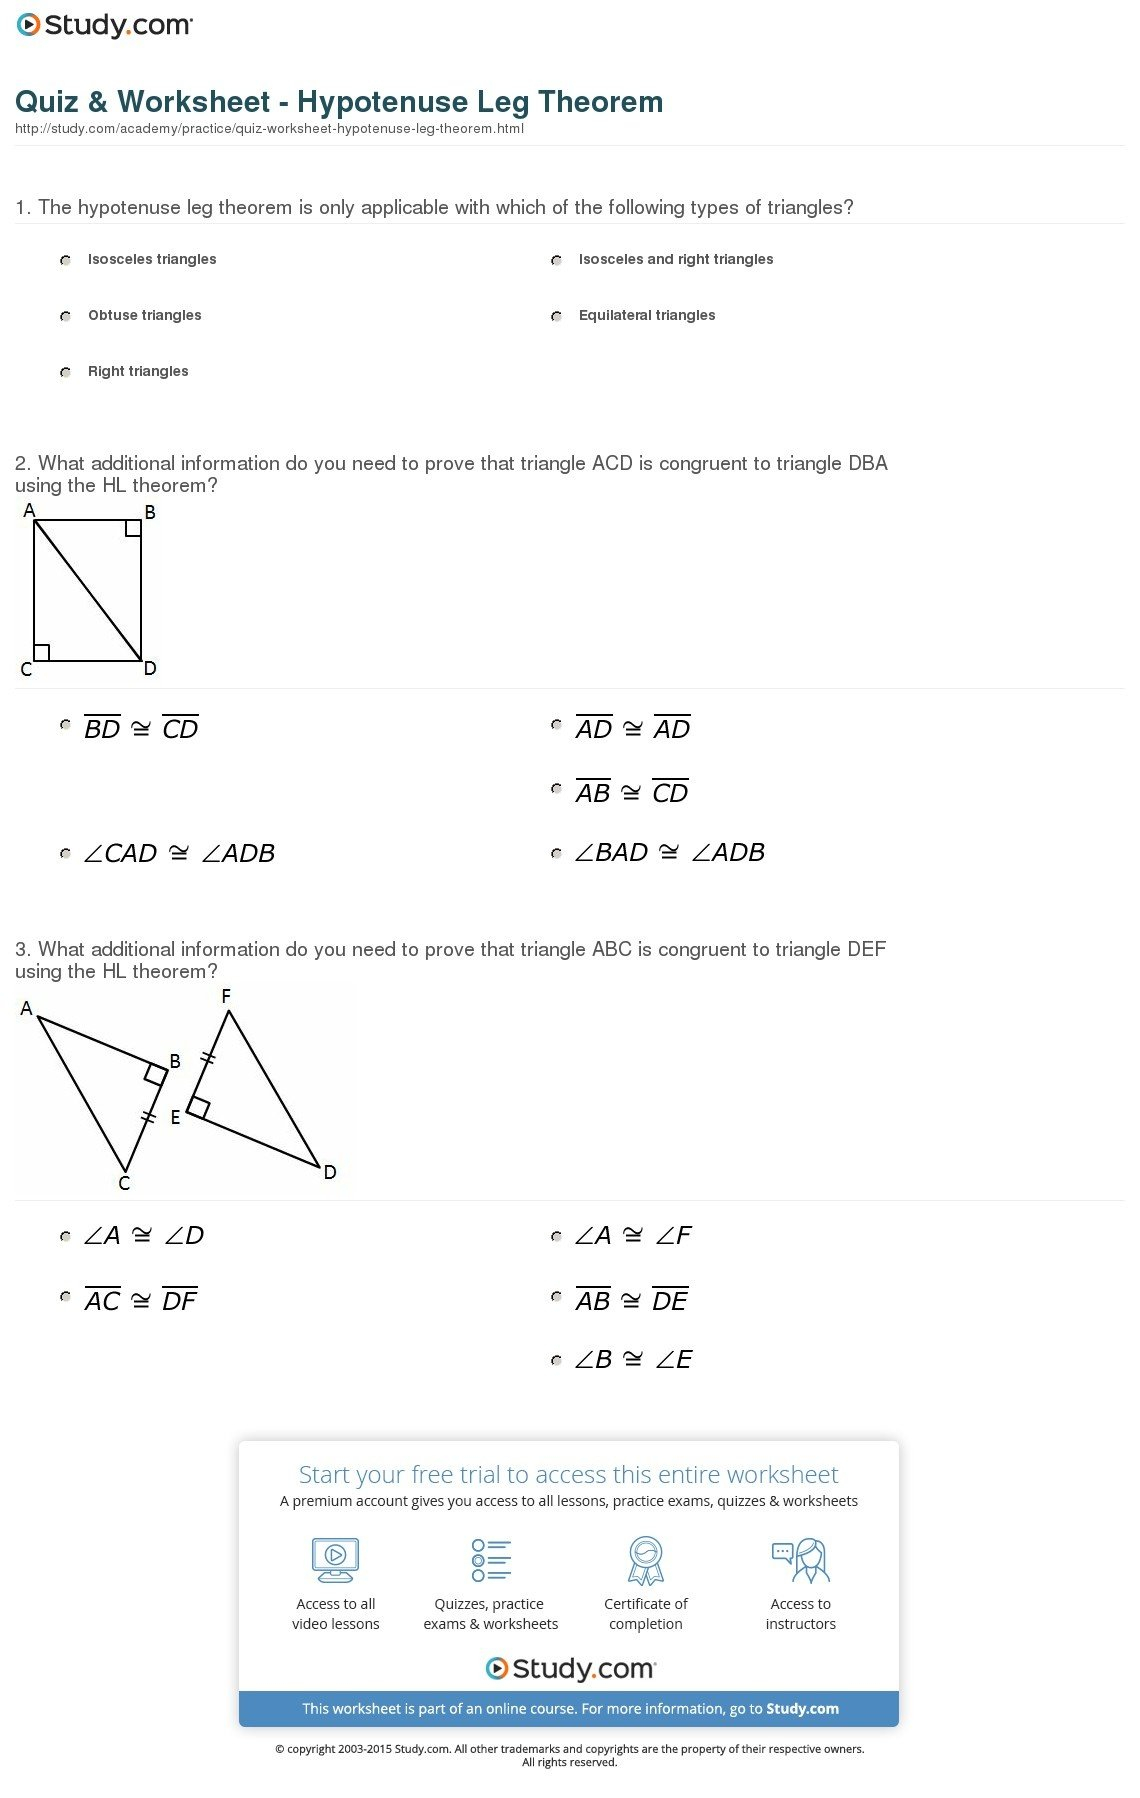 Geometry Worksheet Congruent Triangles Answers Proving Triangles With Triangle Proofs Worksheet Answers